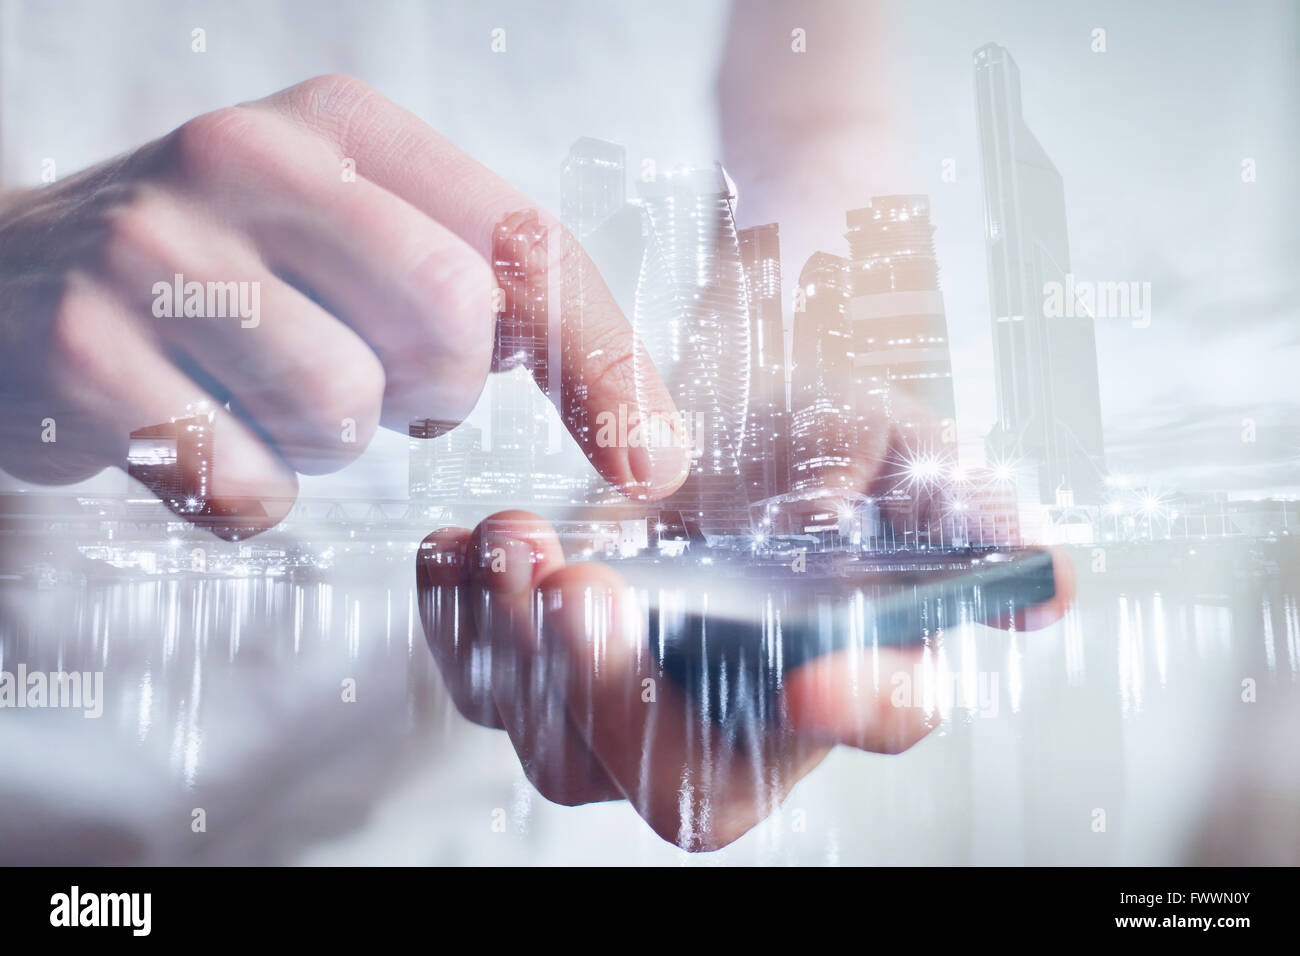 man hands touching smartphone, closeup, double exposure with modern city skyline - Stock Image